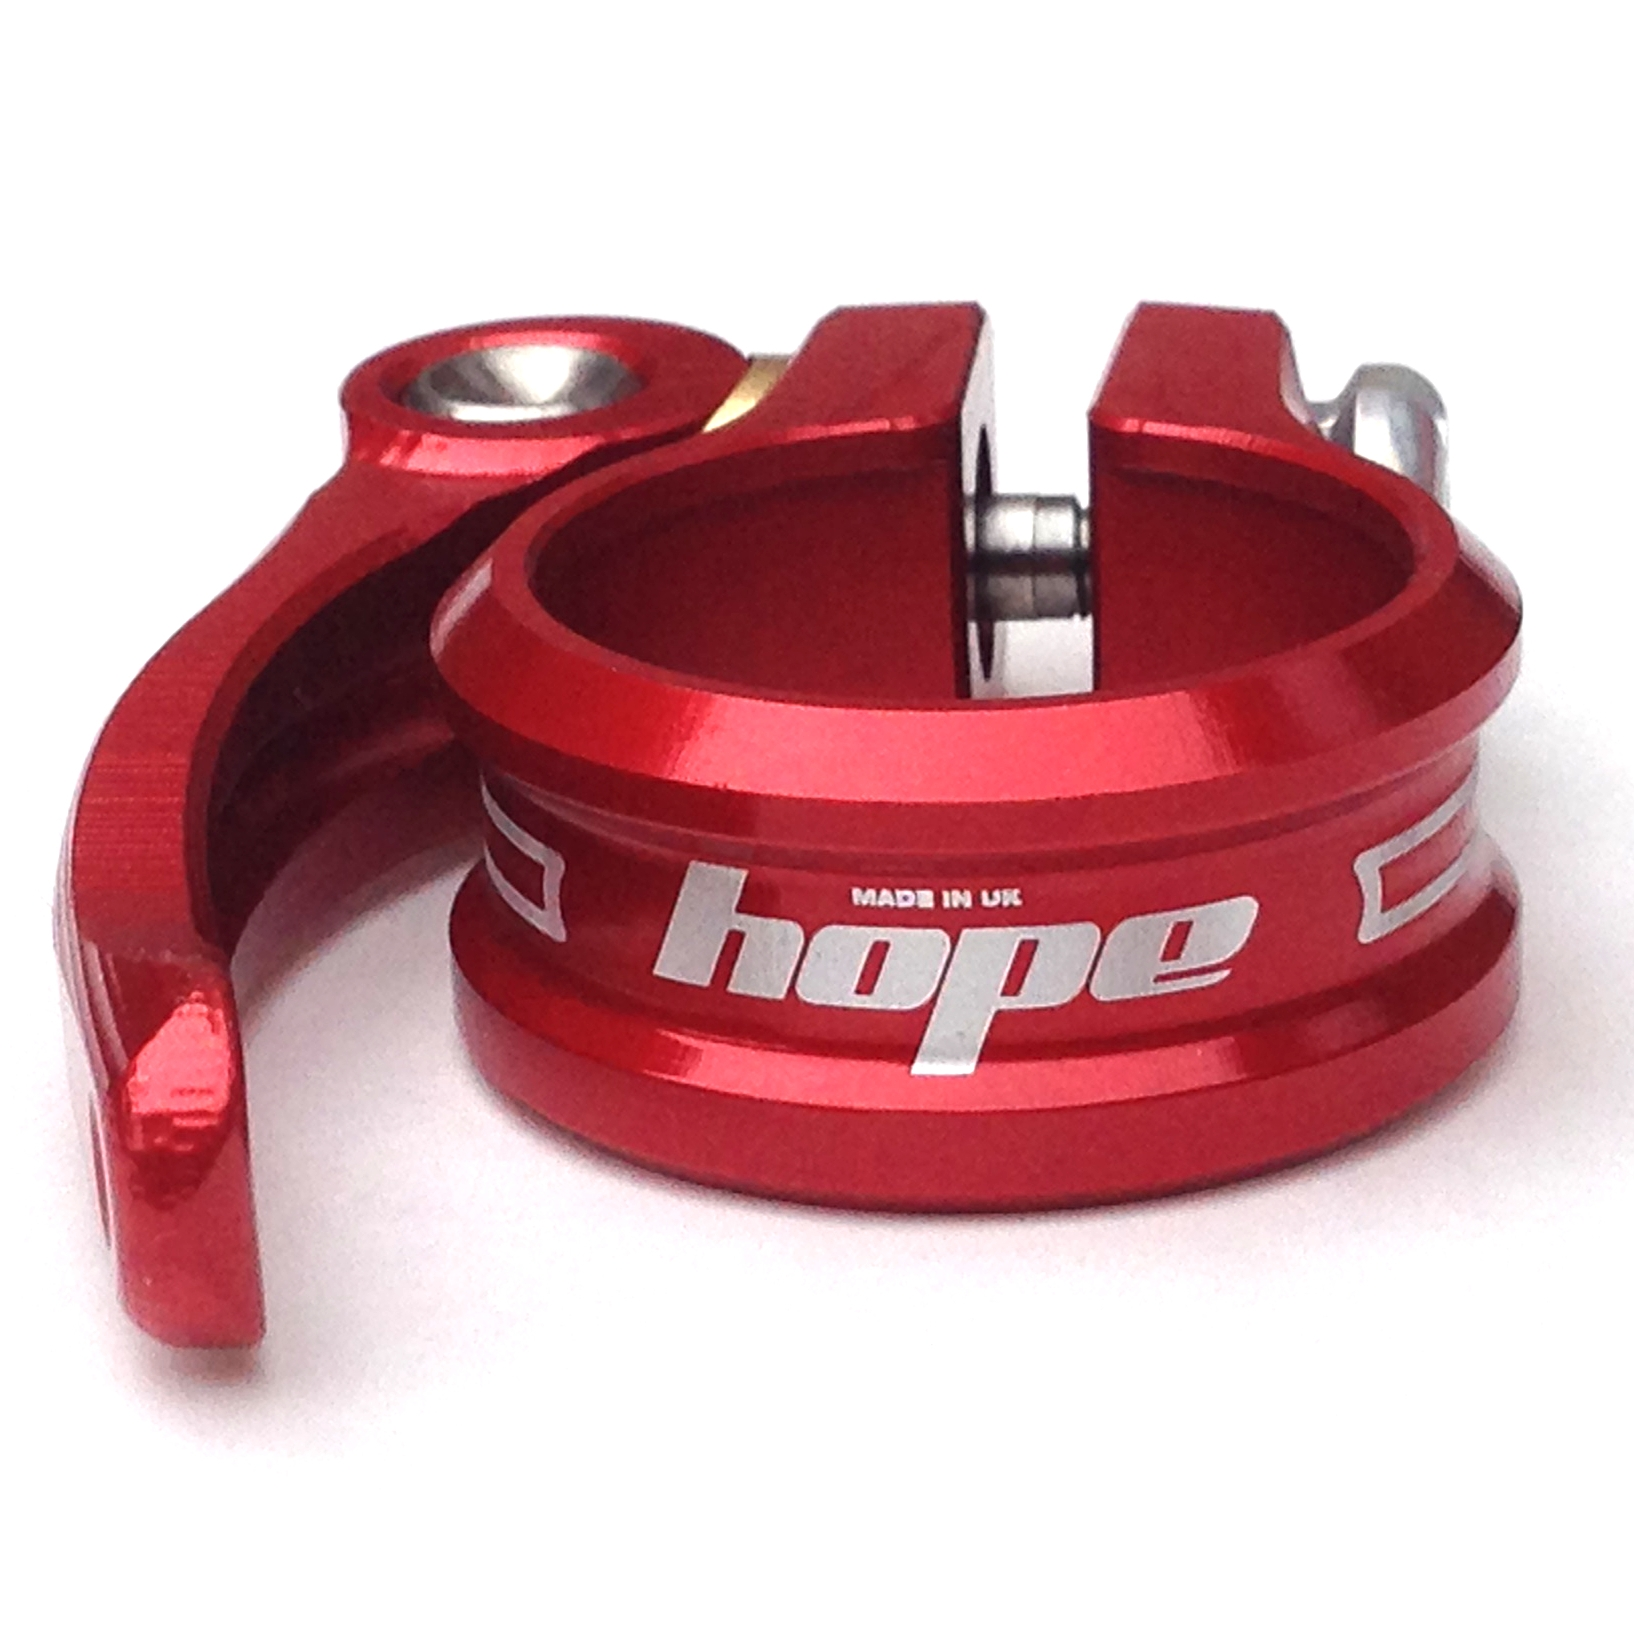 No Logo Quick Release Seatpost Clamp 28.6mm RED seat post